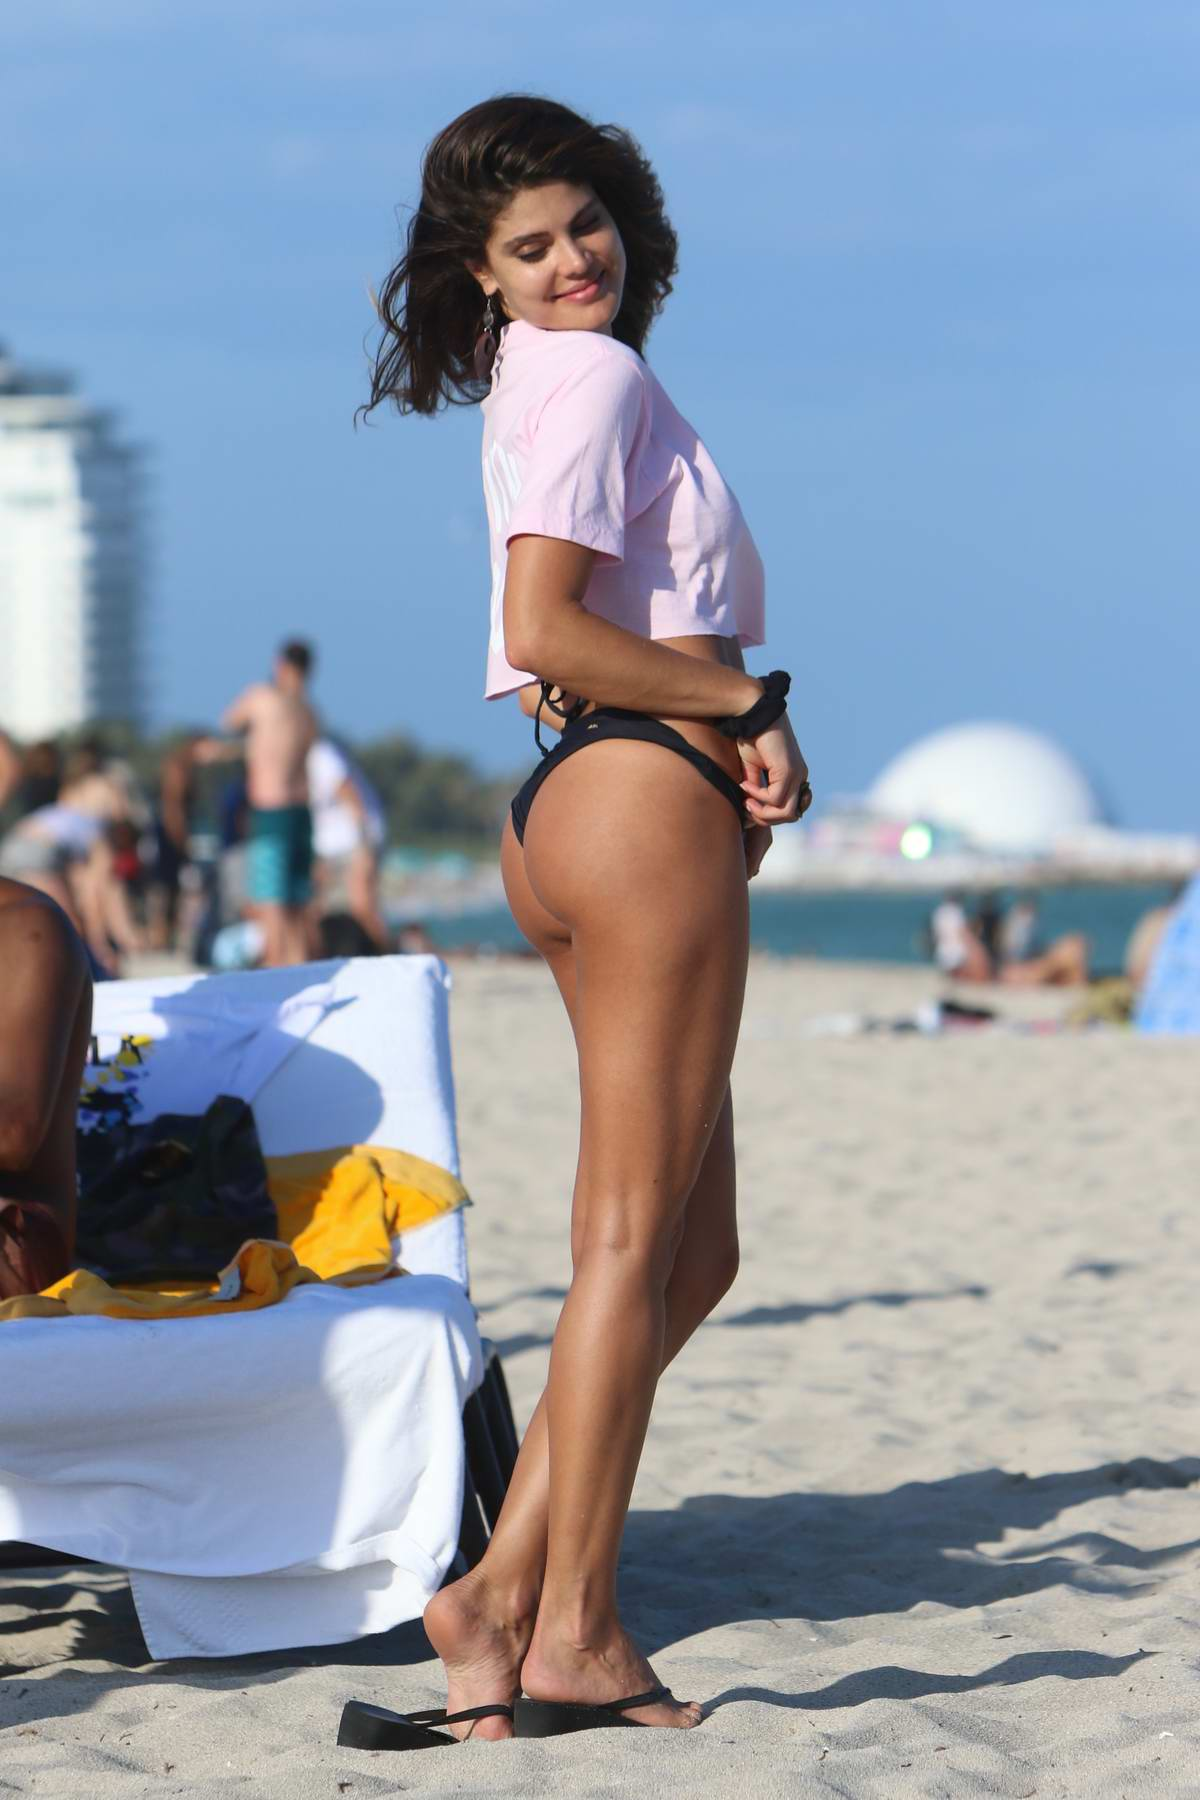 Natalya Alberto in a black bikini spotted at the beach in Miami, Florida